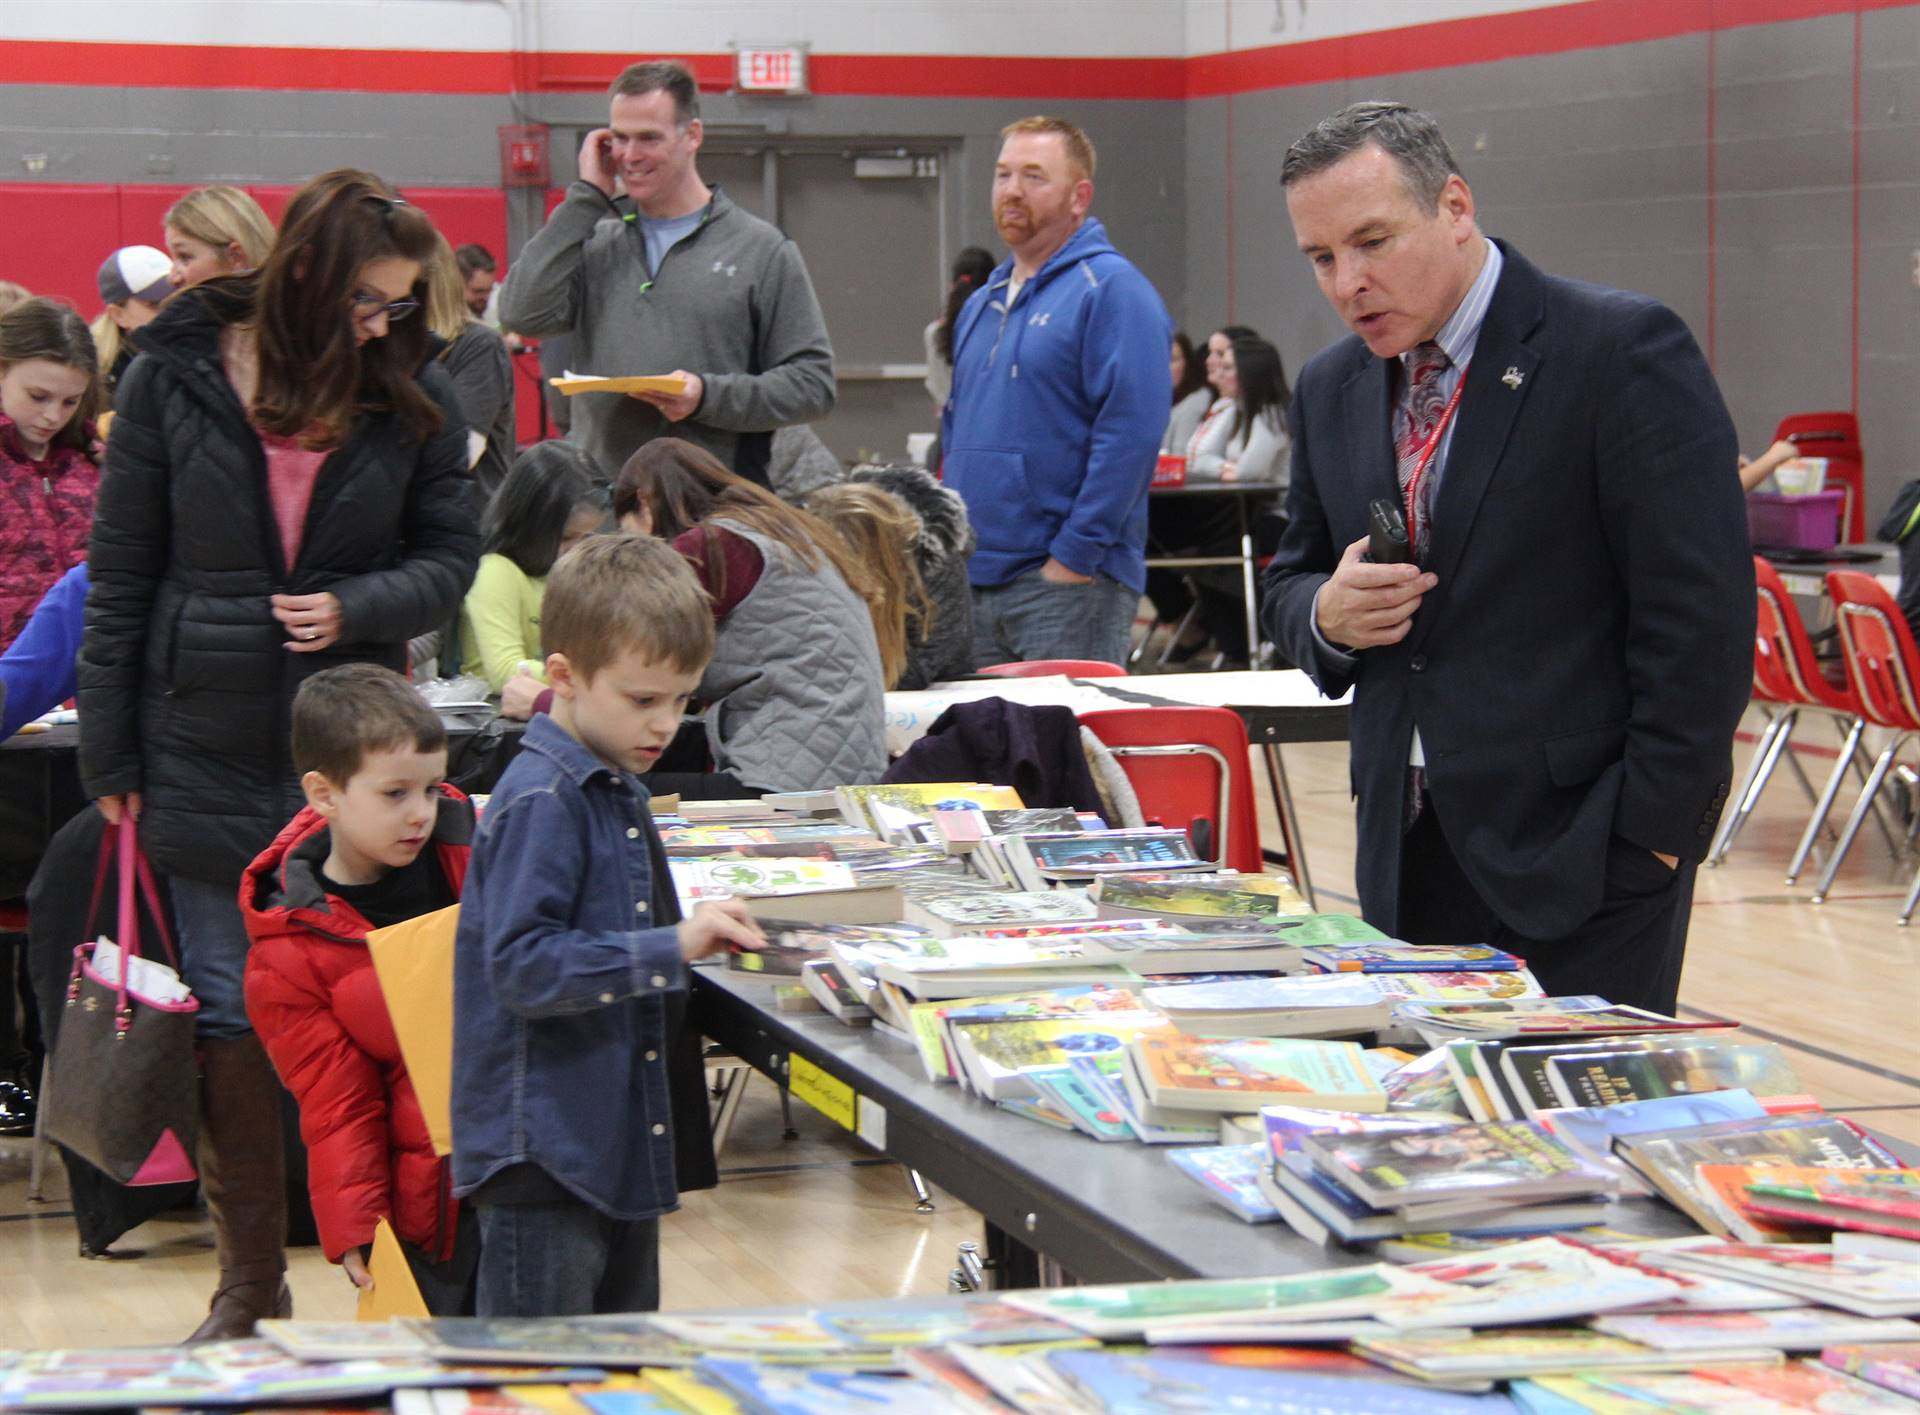 superintendent and students at book table